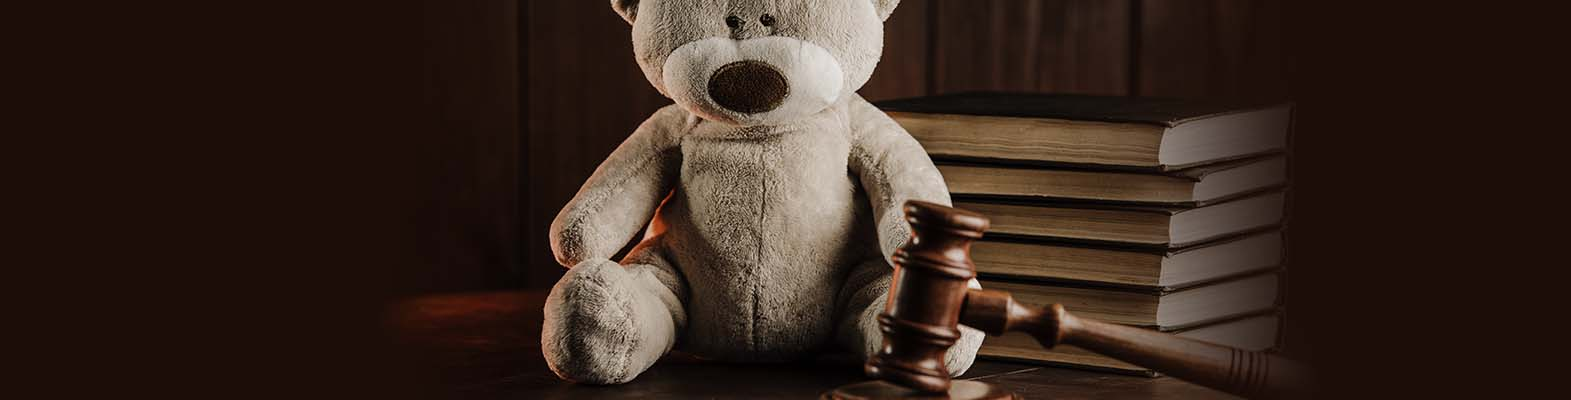 teddy bear next to law books and gravel depicting child custody case